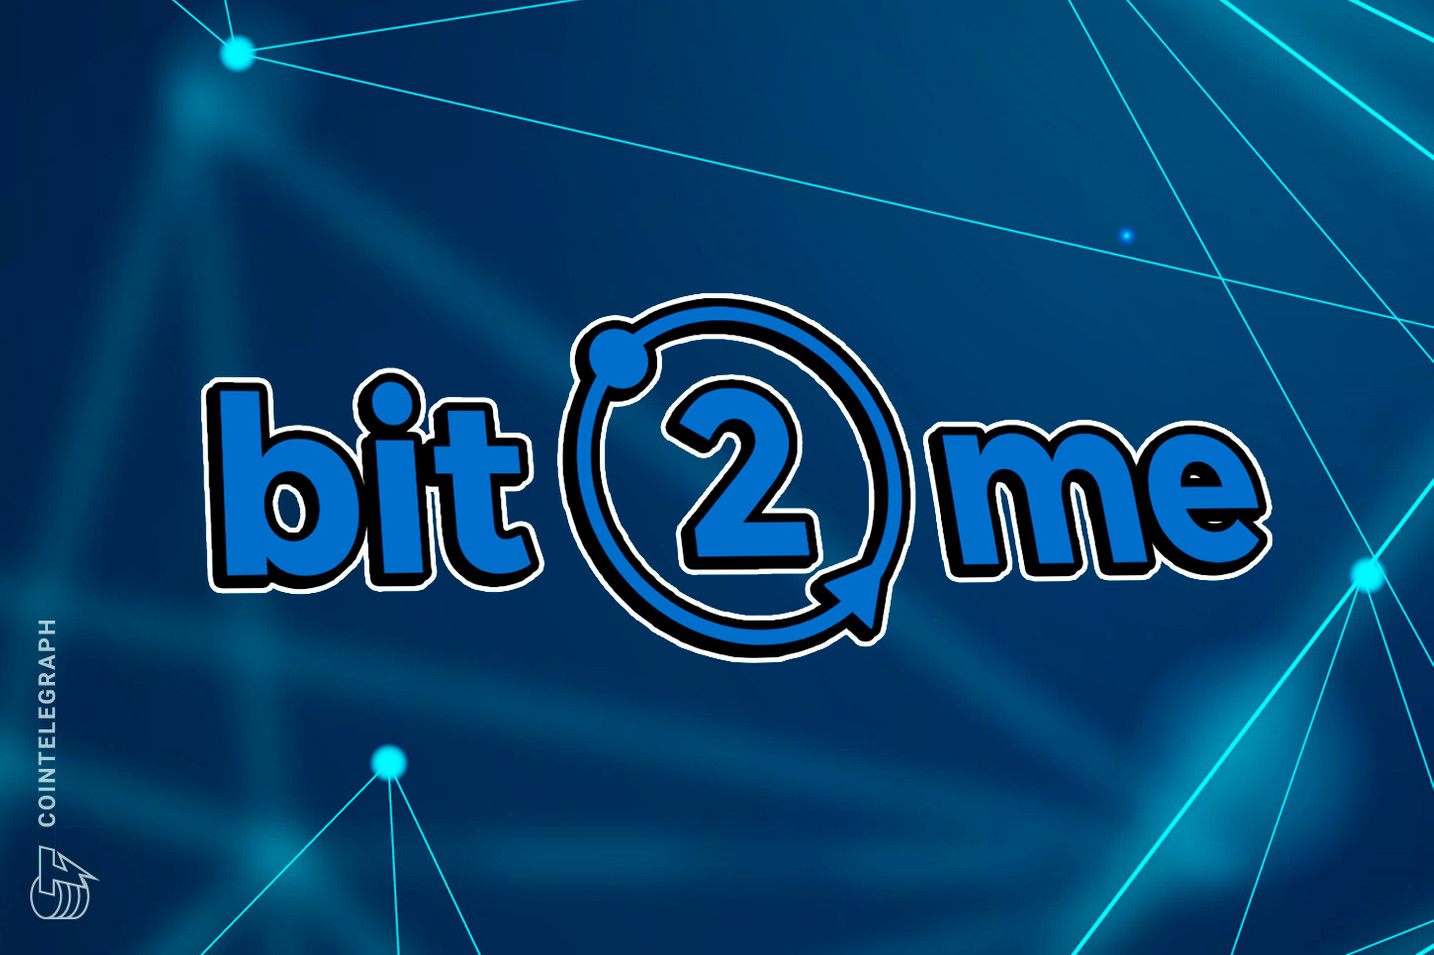 Bit2Me raises 5M euros as phase one of ICO sells out in under 60 seconds